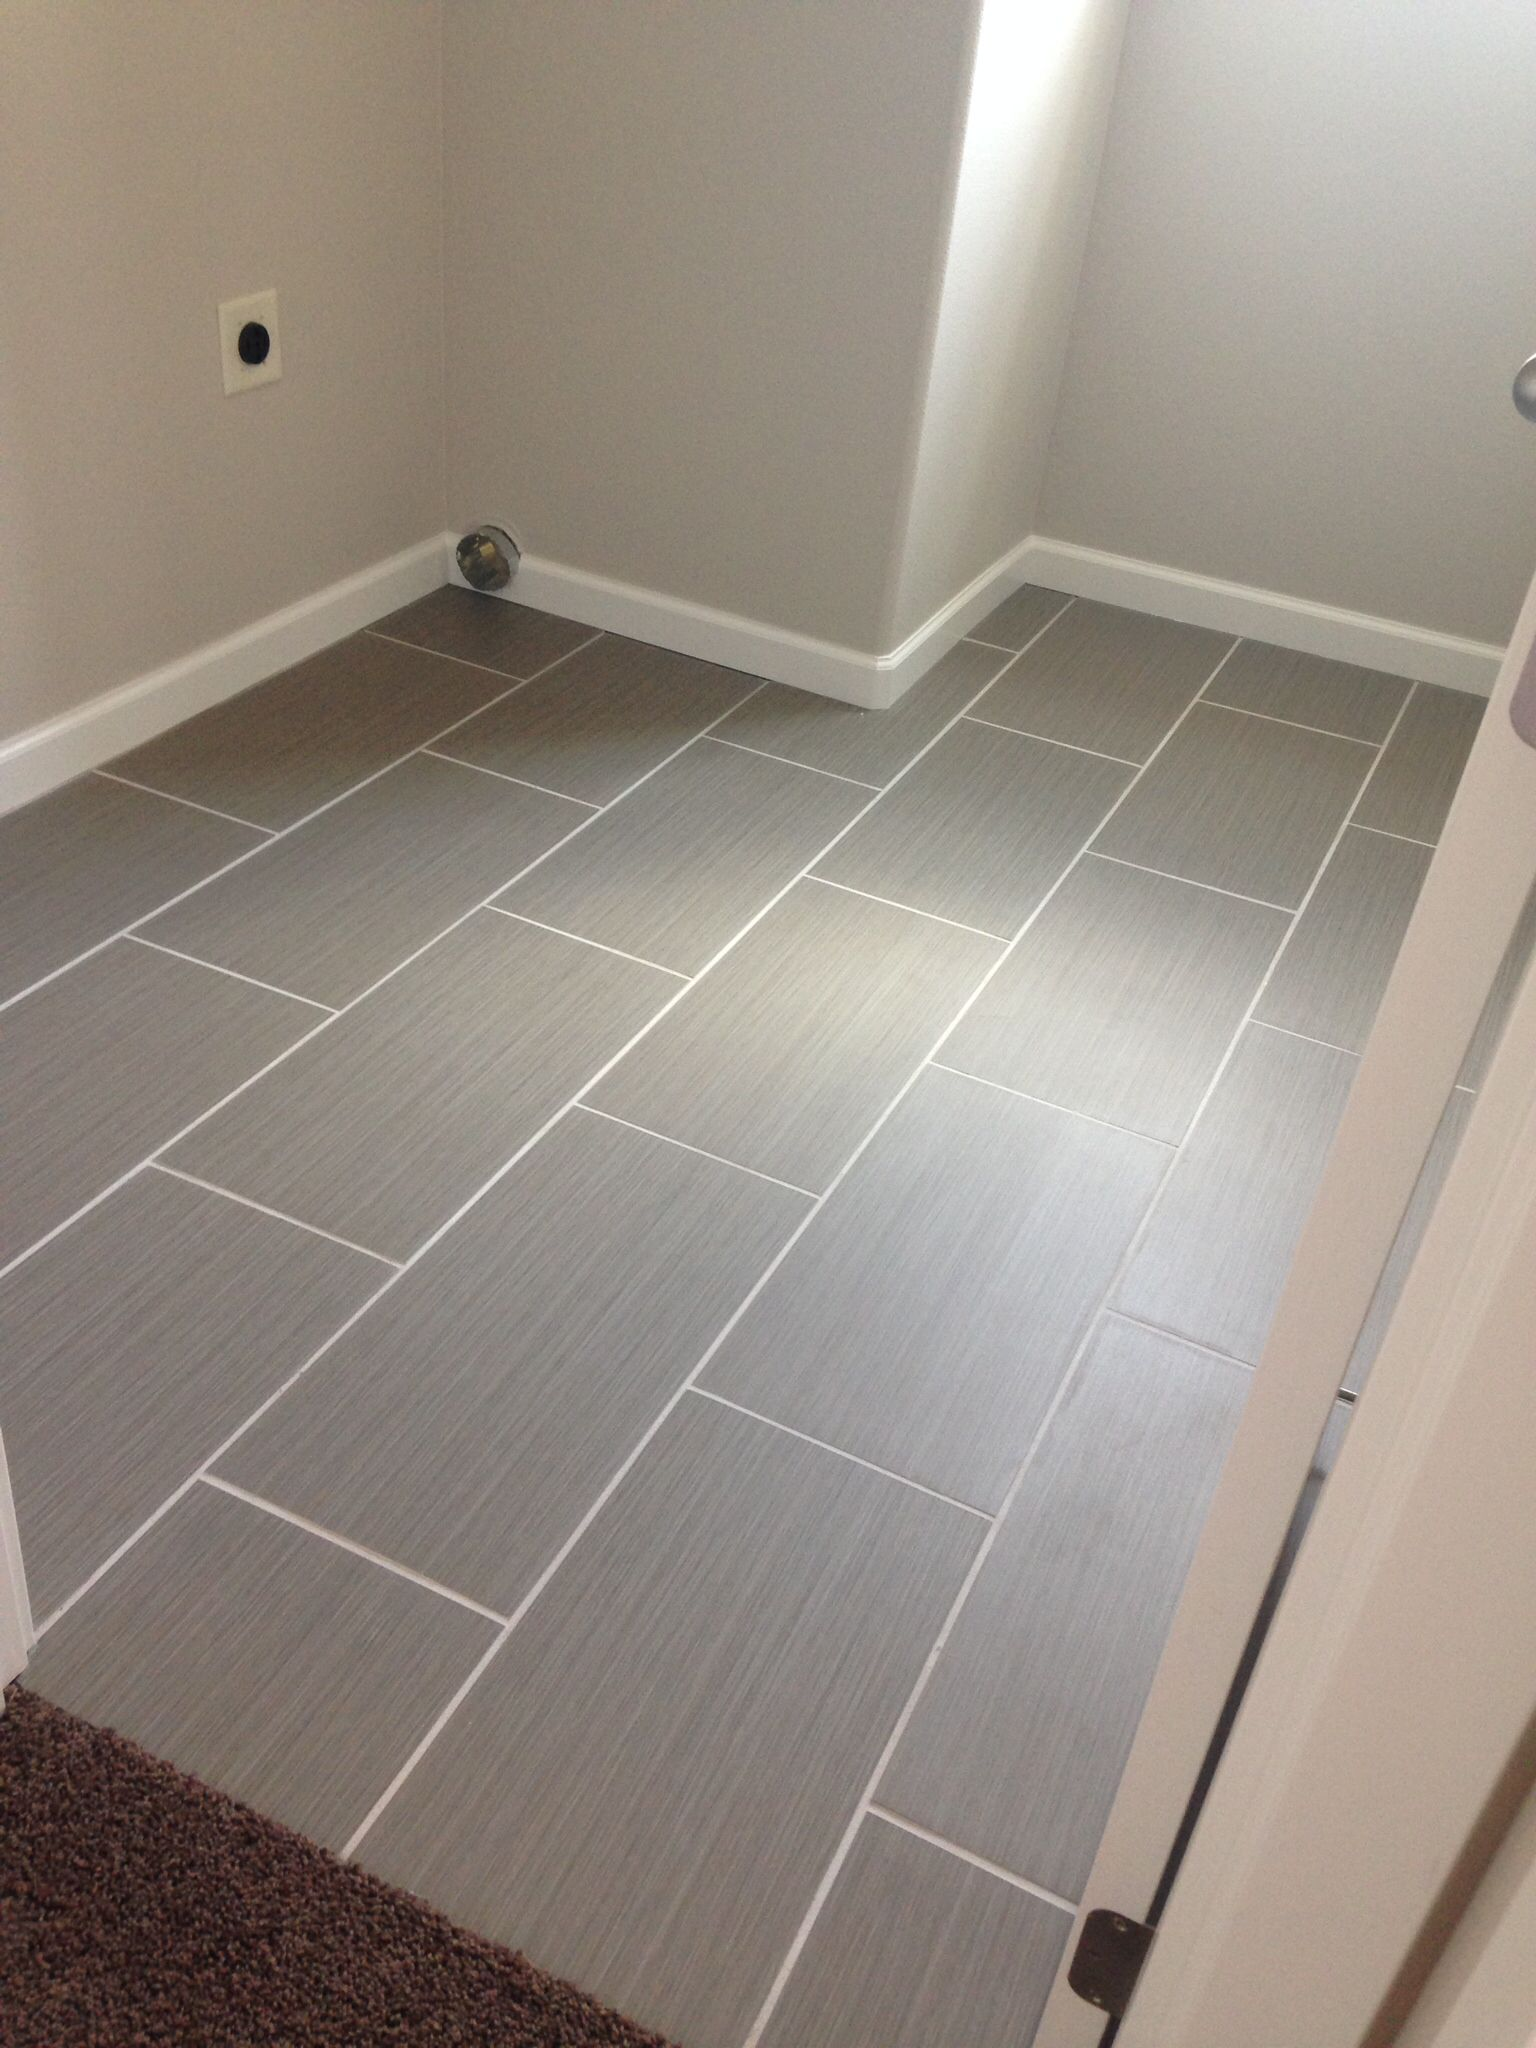 Gray tile from costco 721343 neo tile 1 39 2 39 porcelain tile 10 sq ft 5 pc mudroom home is Bathroom tiles design and price